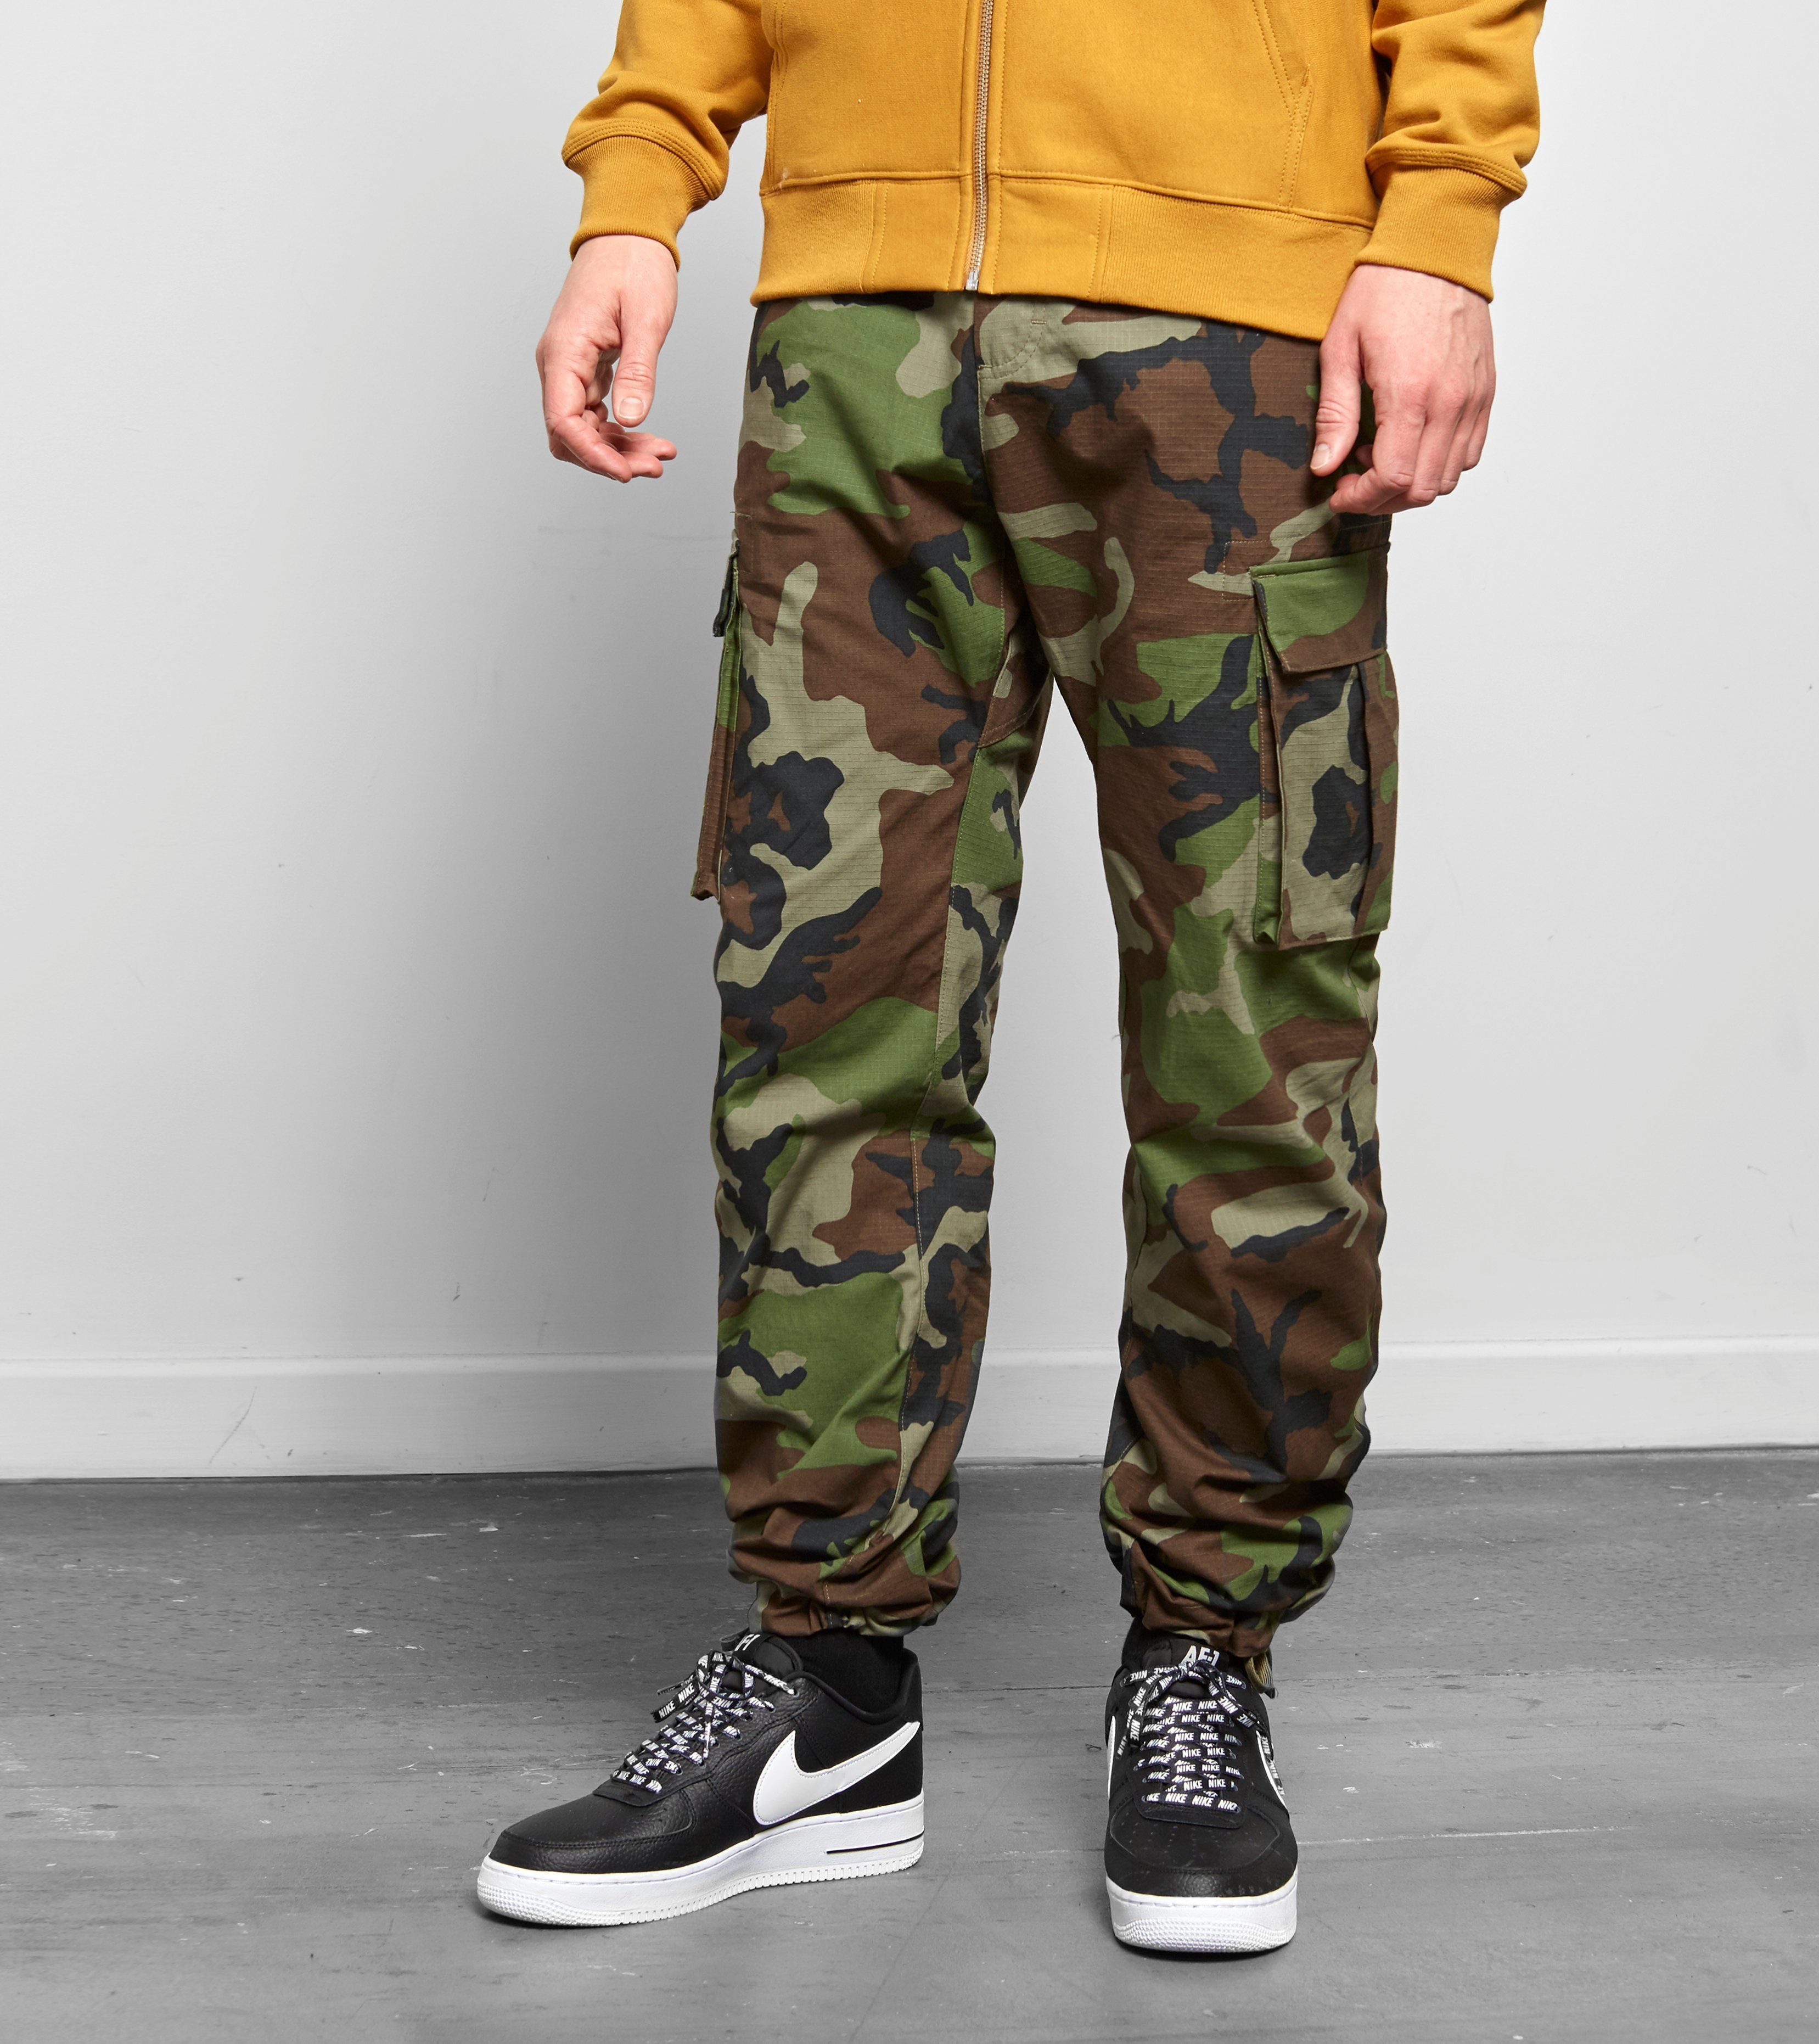 2a353e7c3f Nike SB Flex Cargo Pants - find out more on our site. Find the freshest in  trainers and clothing online now.